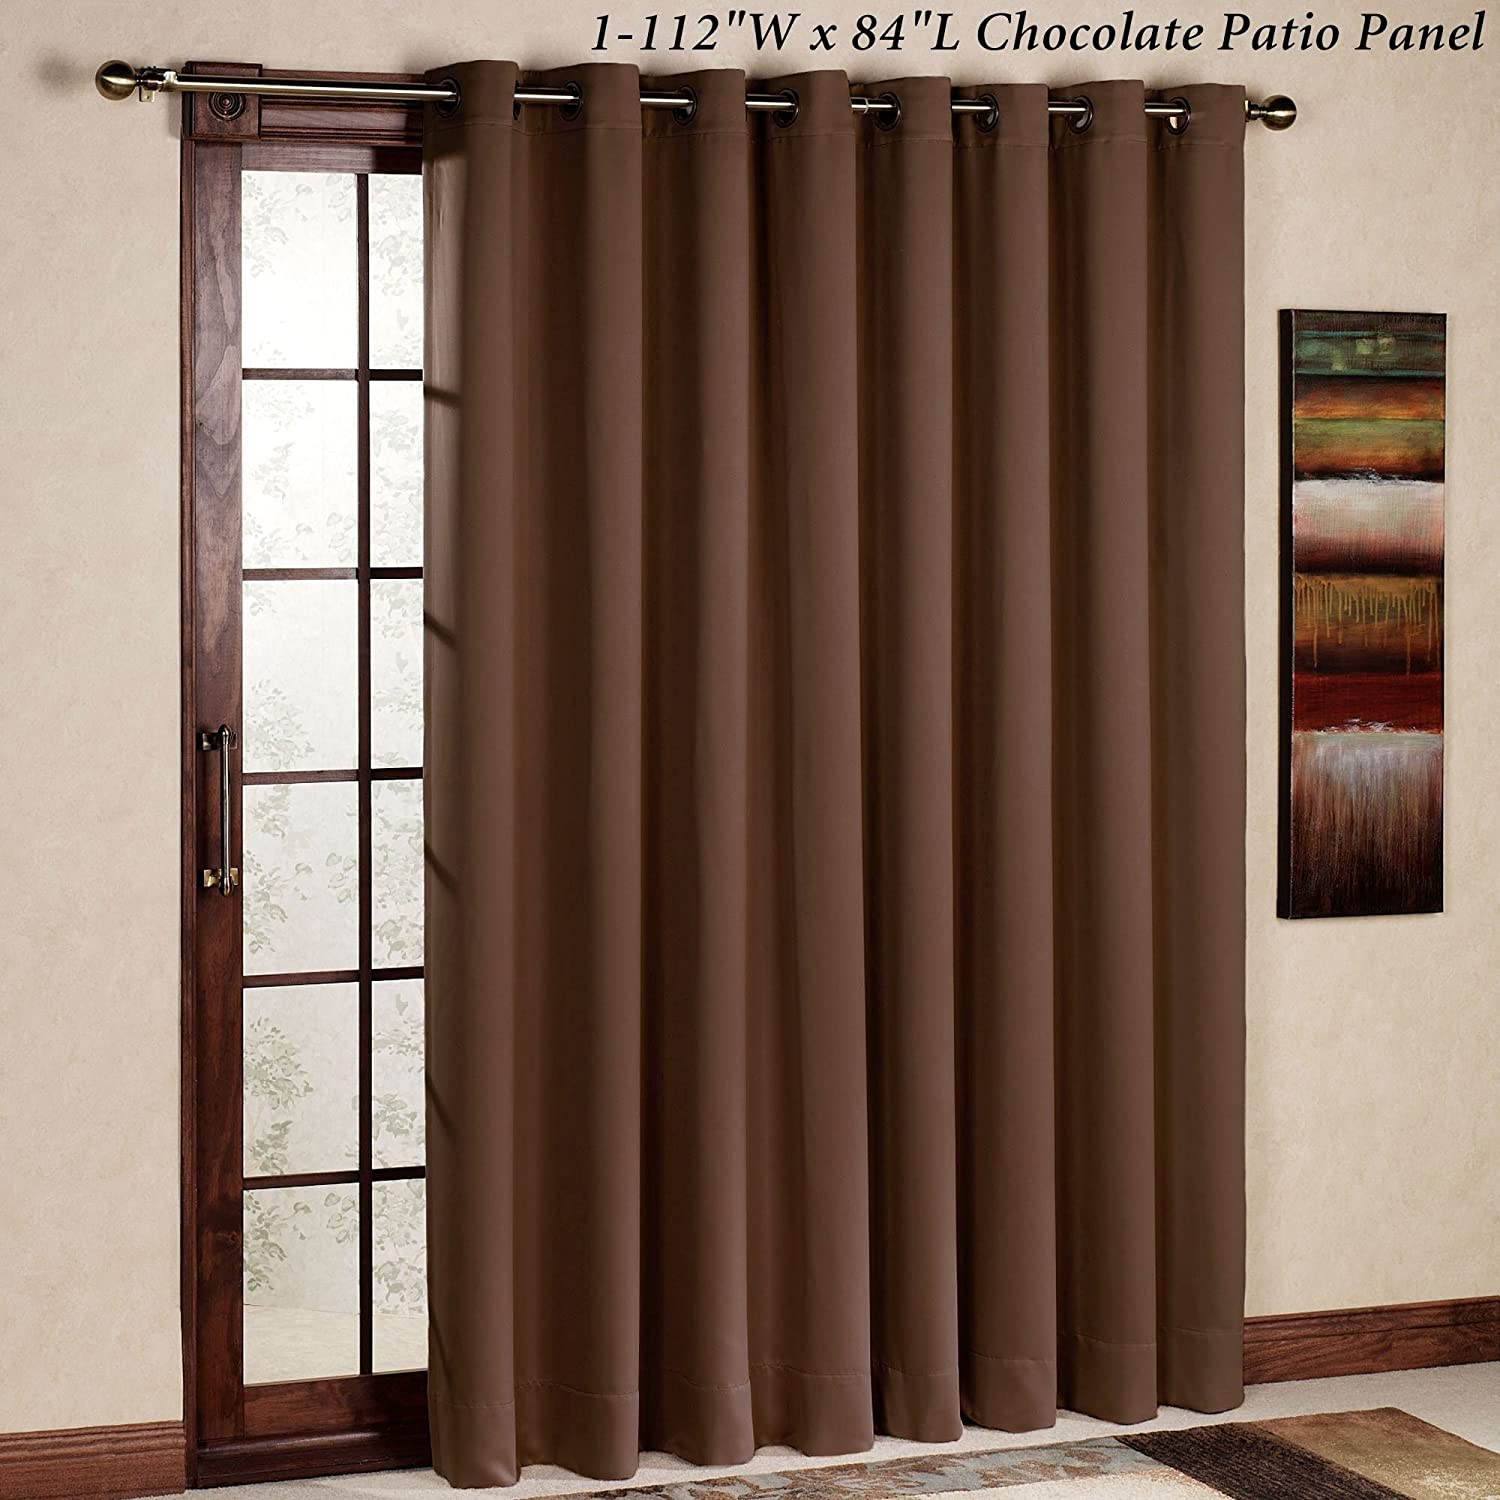 fabric for curtain sliding eclipse amazon curtains doors glass thermal lining best